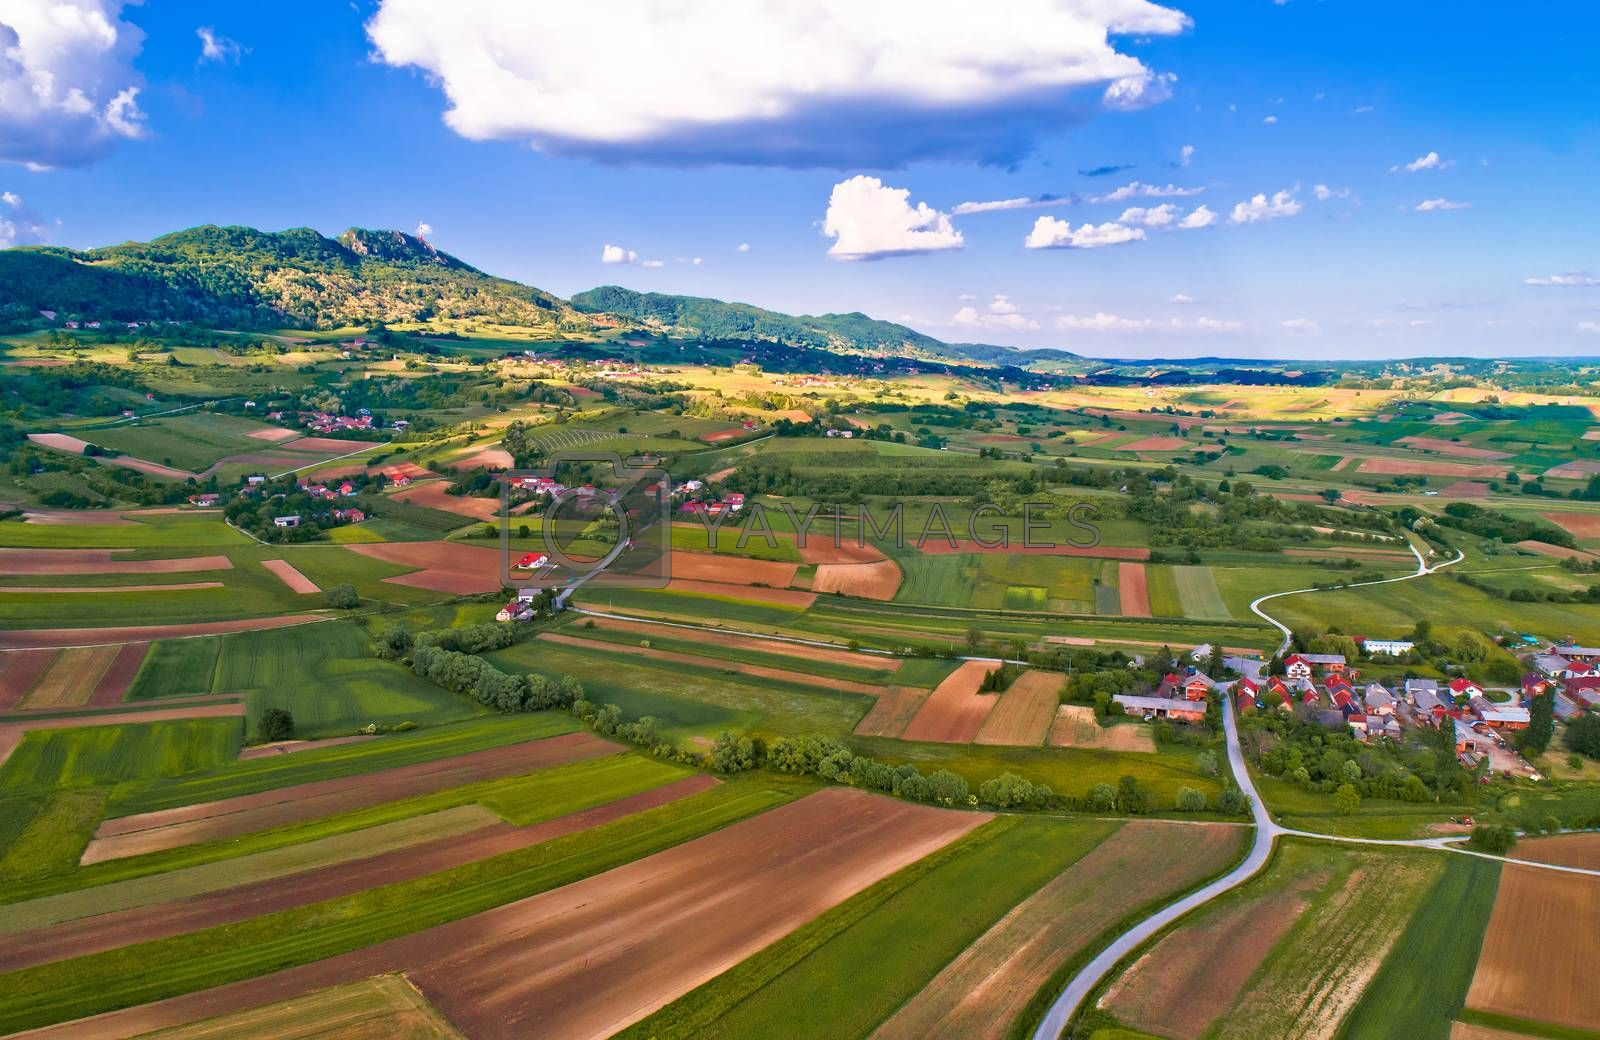 Kalnik mountain and green landscape village aerial view, Prigorje region of Croatia